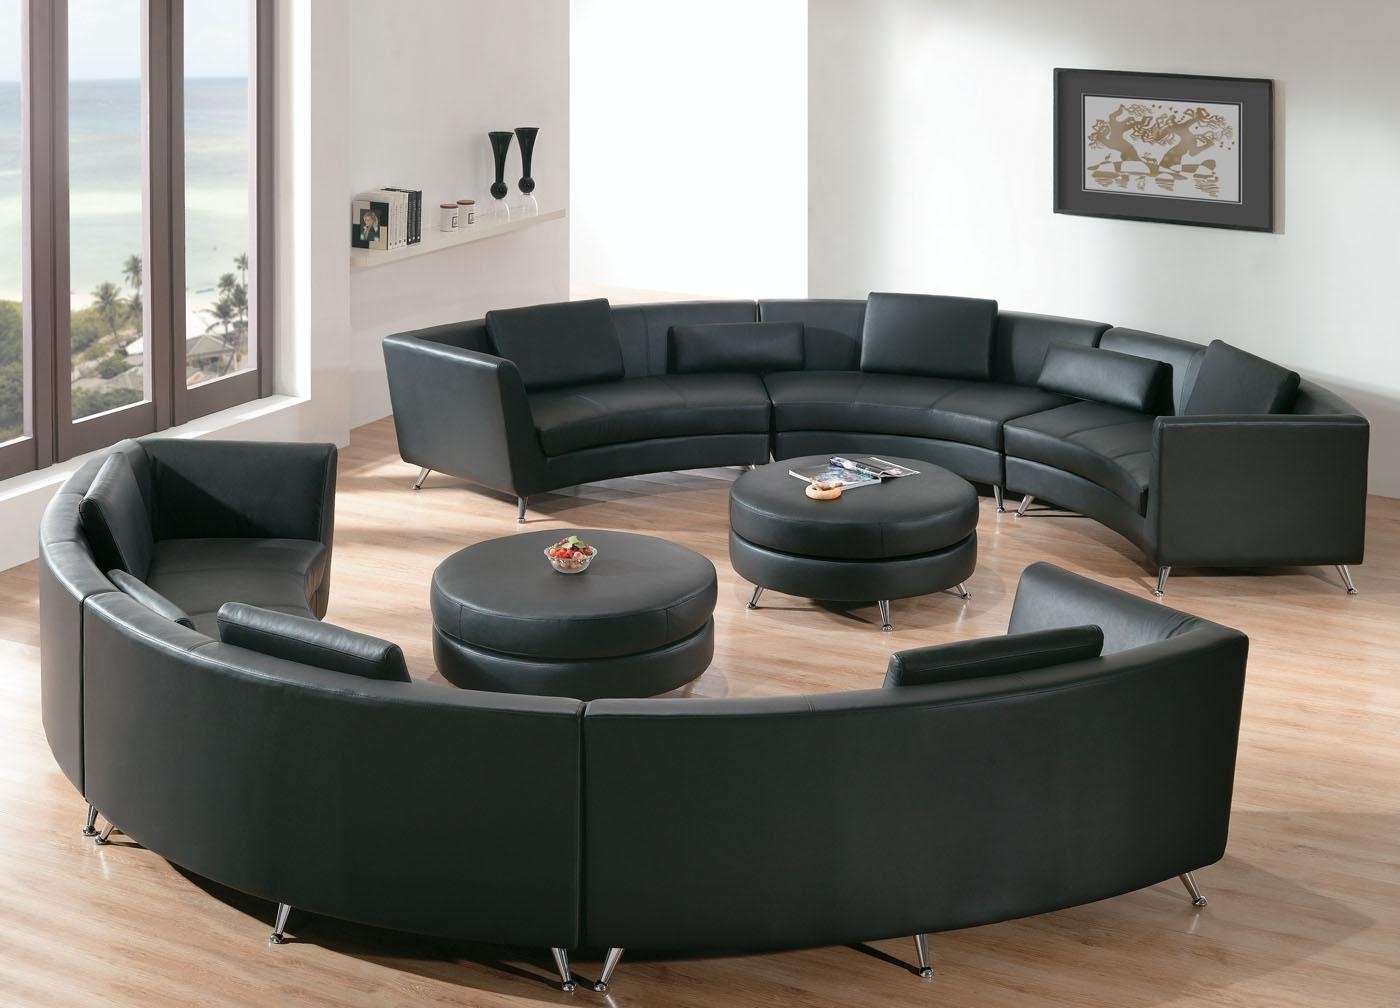 Round Sofa Chair 20 Best Collection Of Big Round Sofa Chairs Sofa Ideas